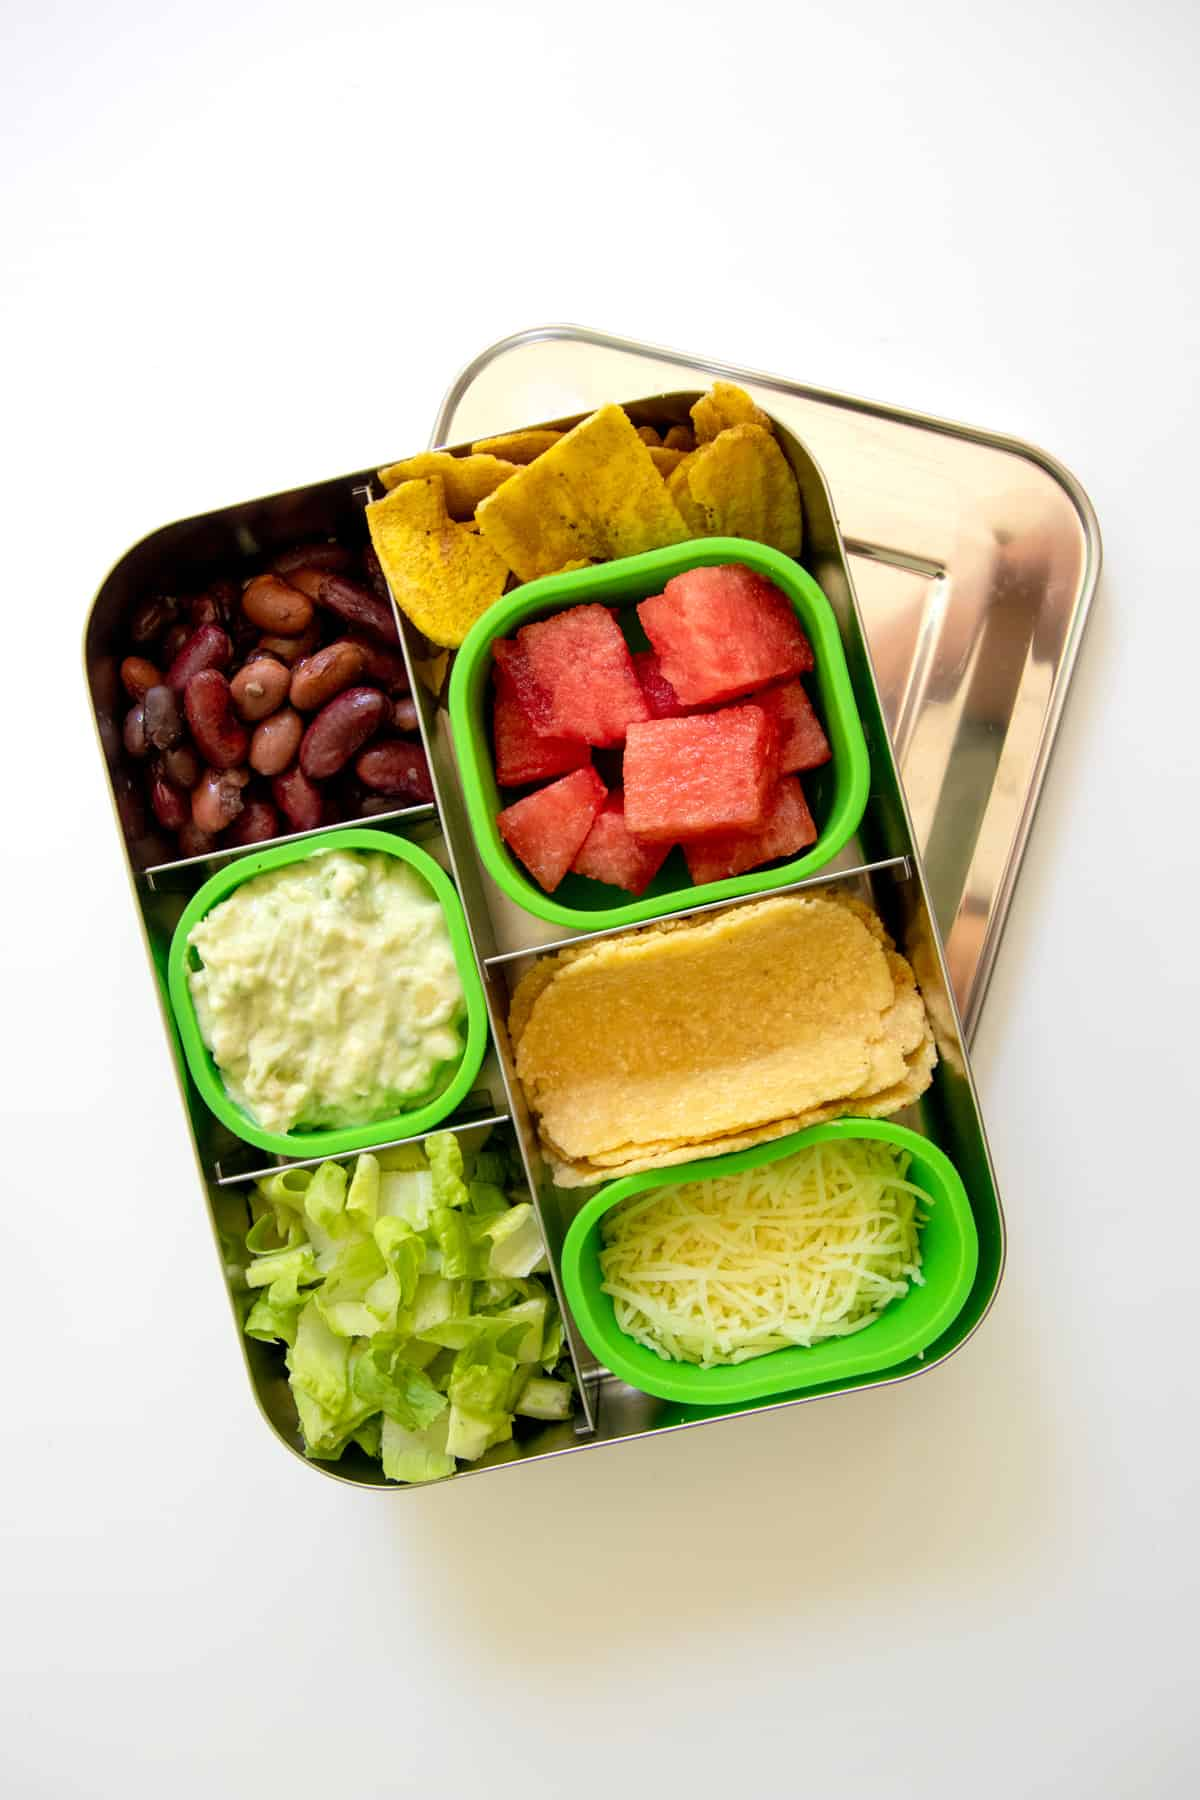 Bento-style lunch box filled with the makings for two-bite tacos